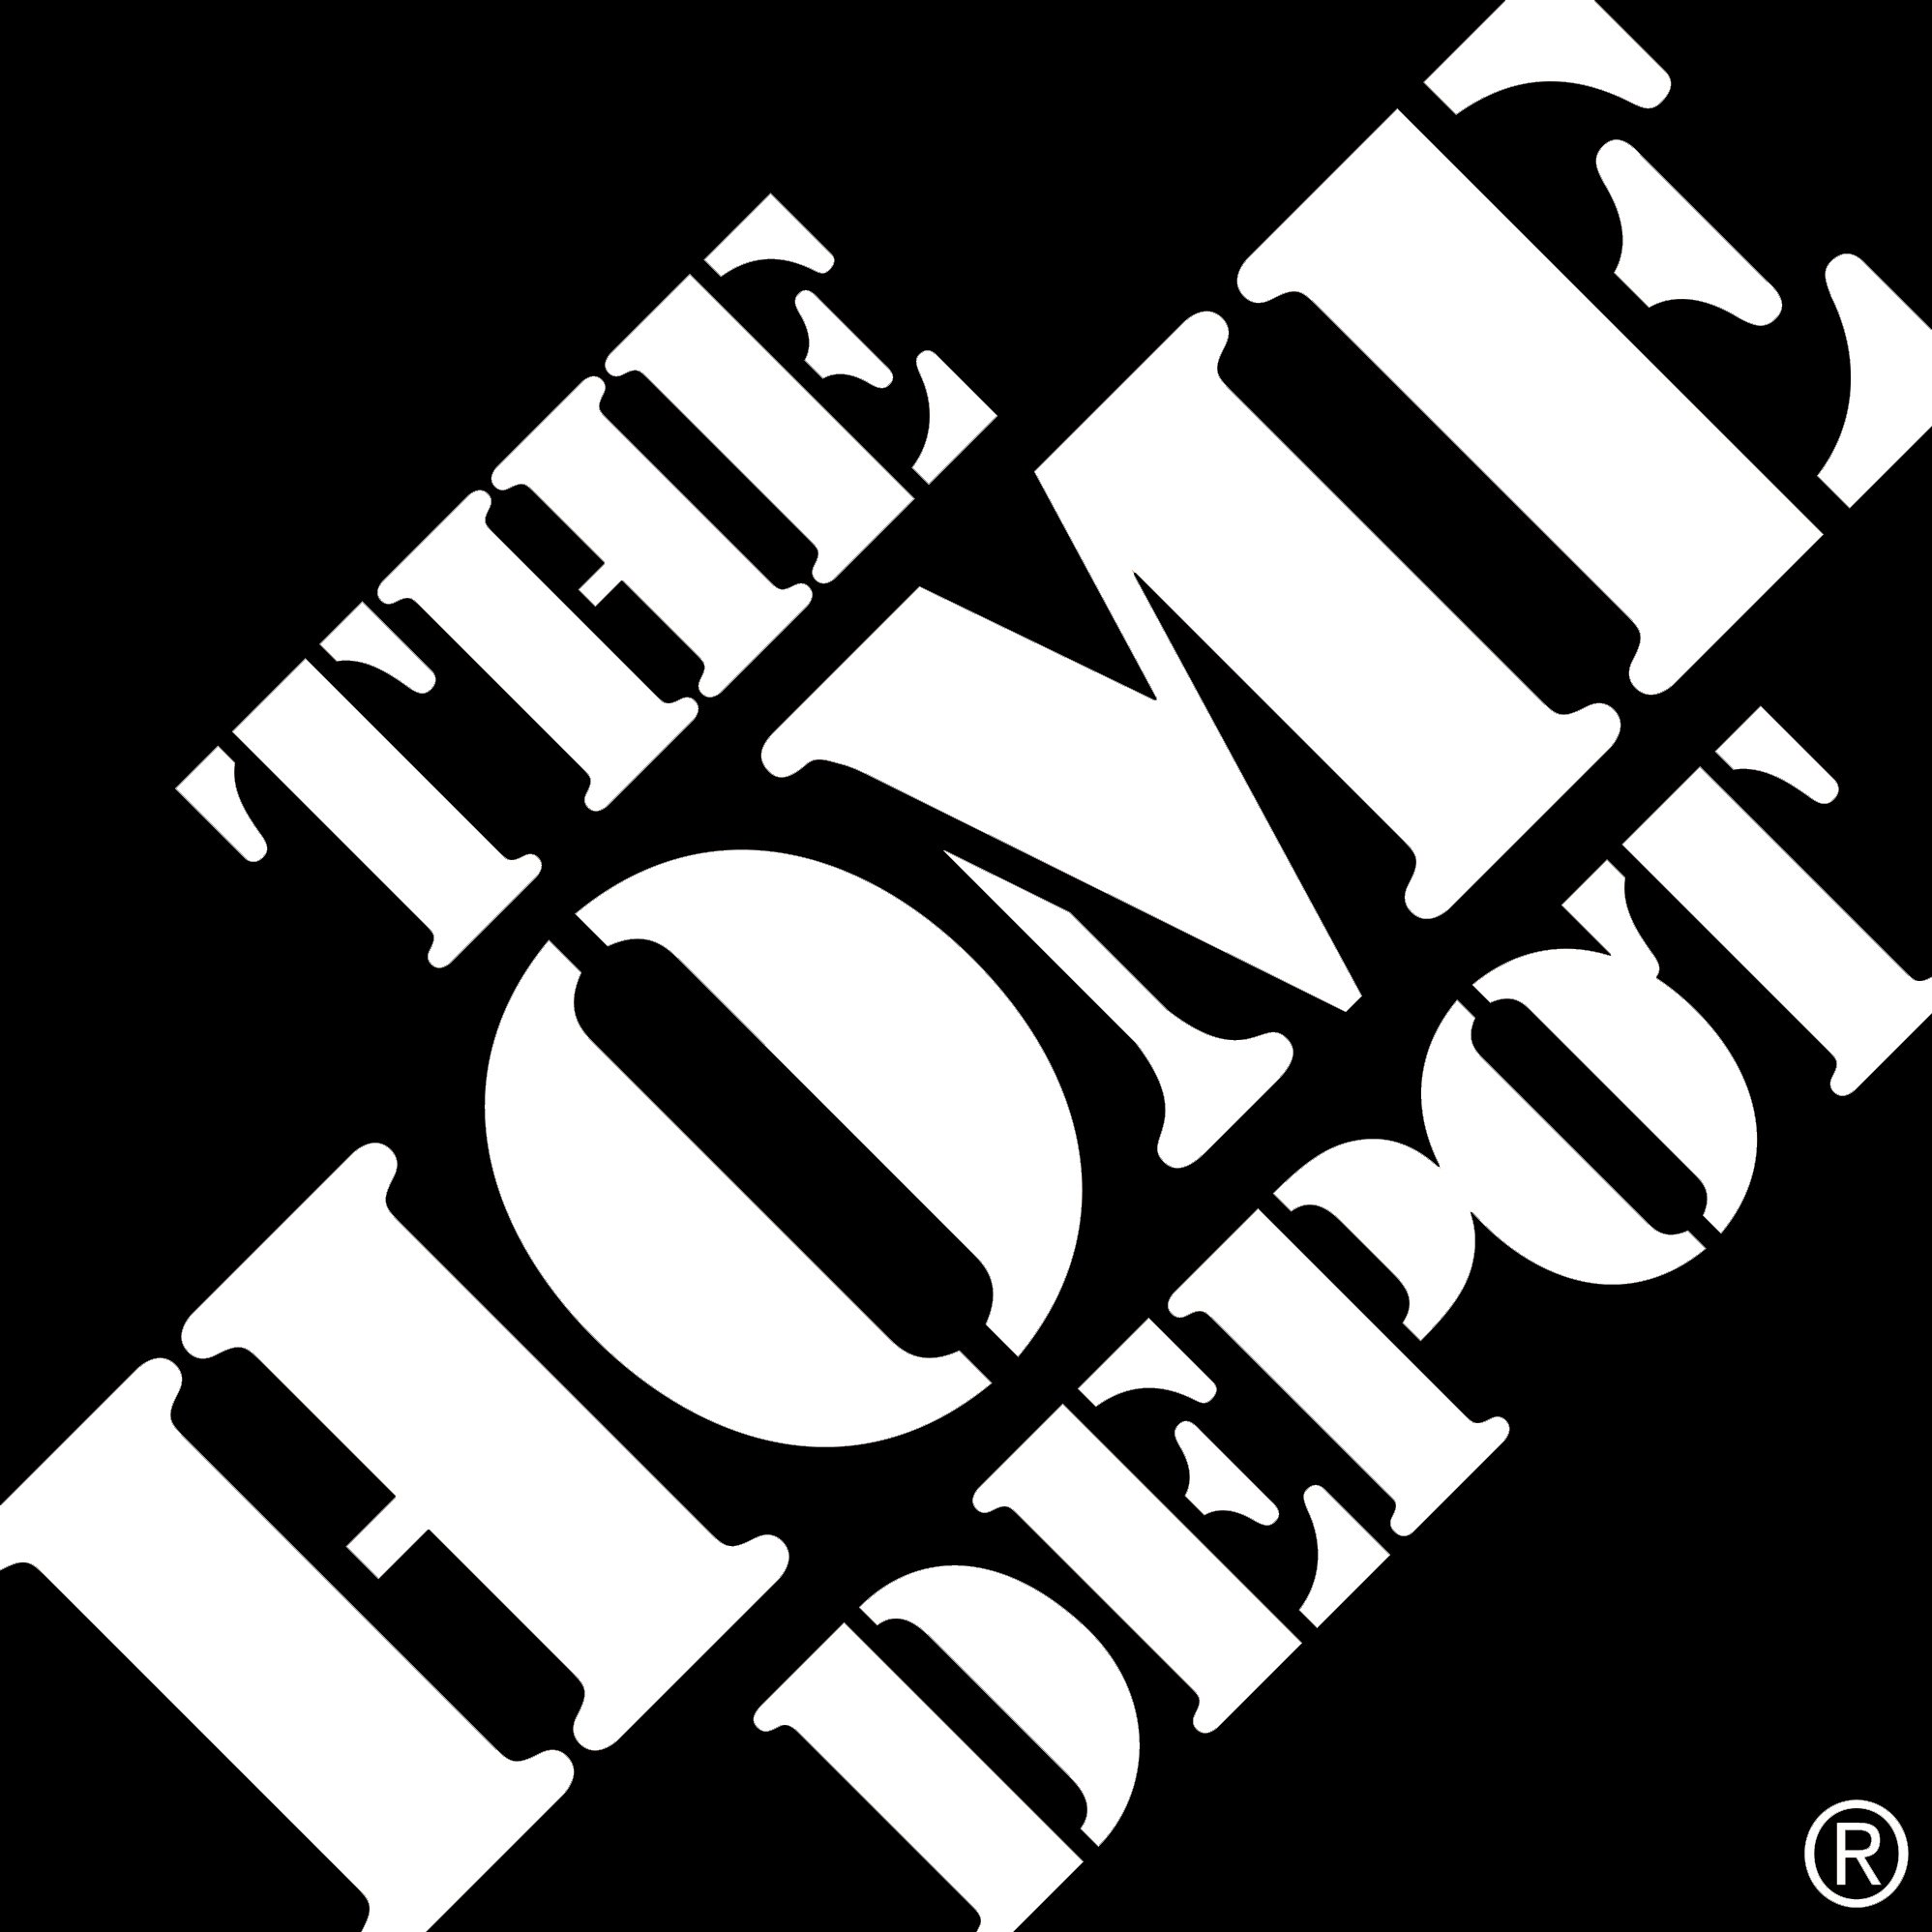 Home Depot Logo Home Depot Symbol Meaning History and  : Home Depot emblem from 1000logos.net size 1997 x 1997 jpeg 448kB